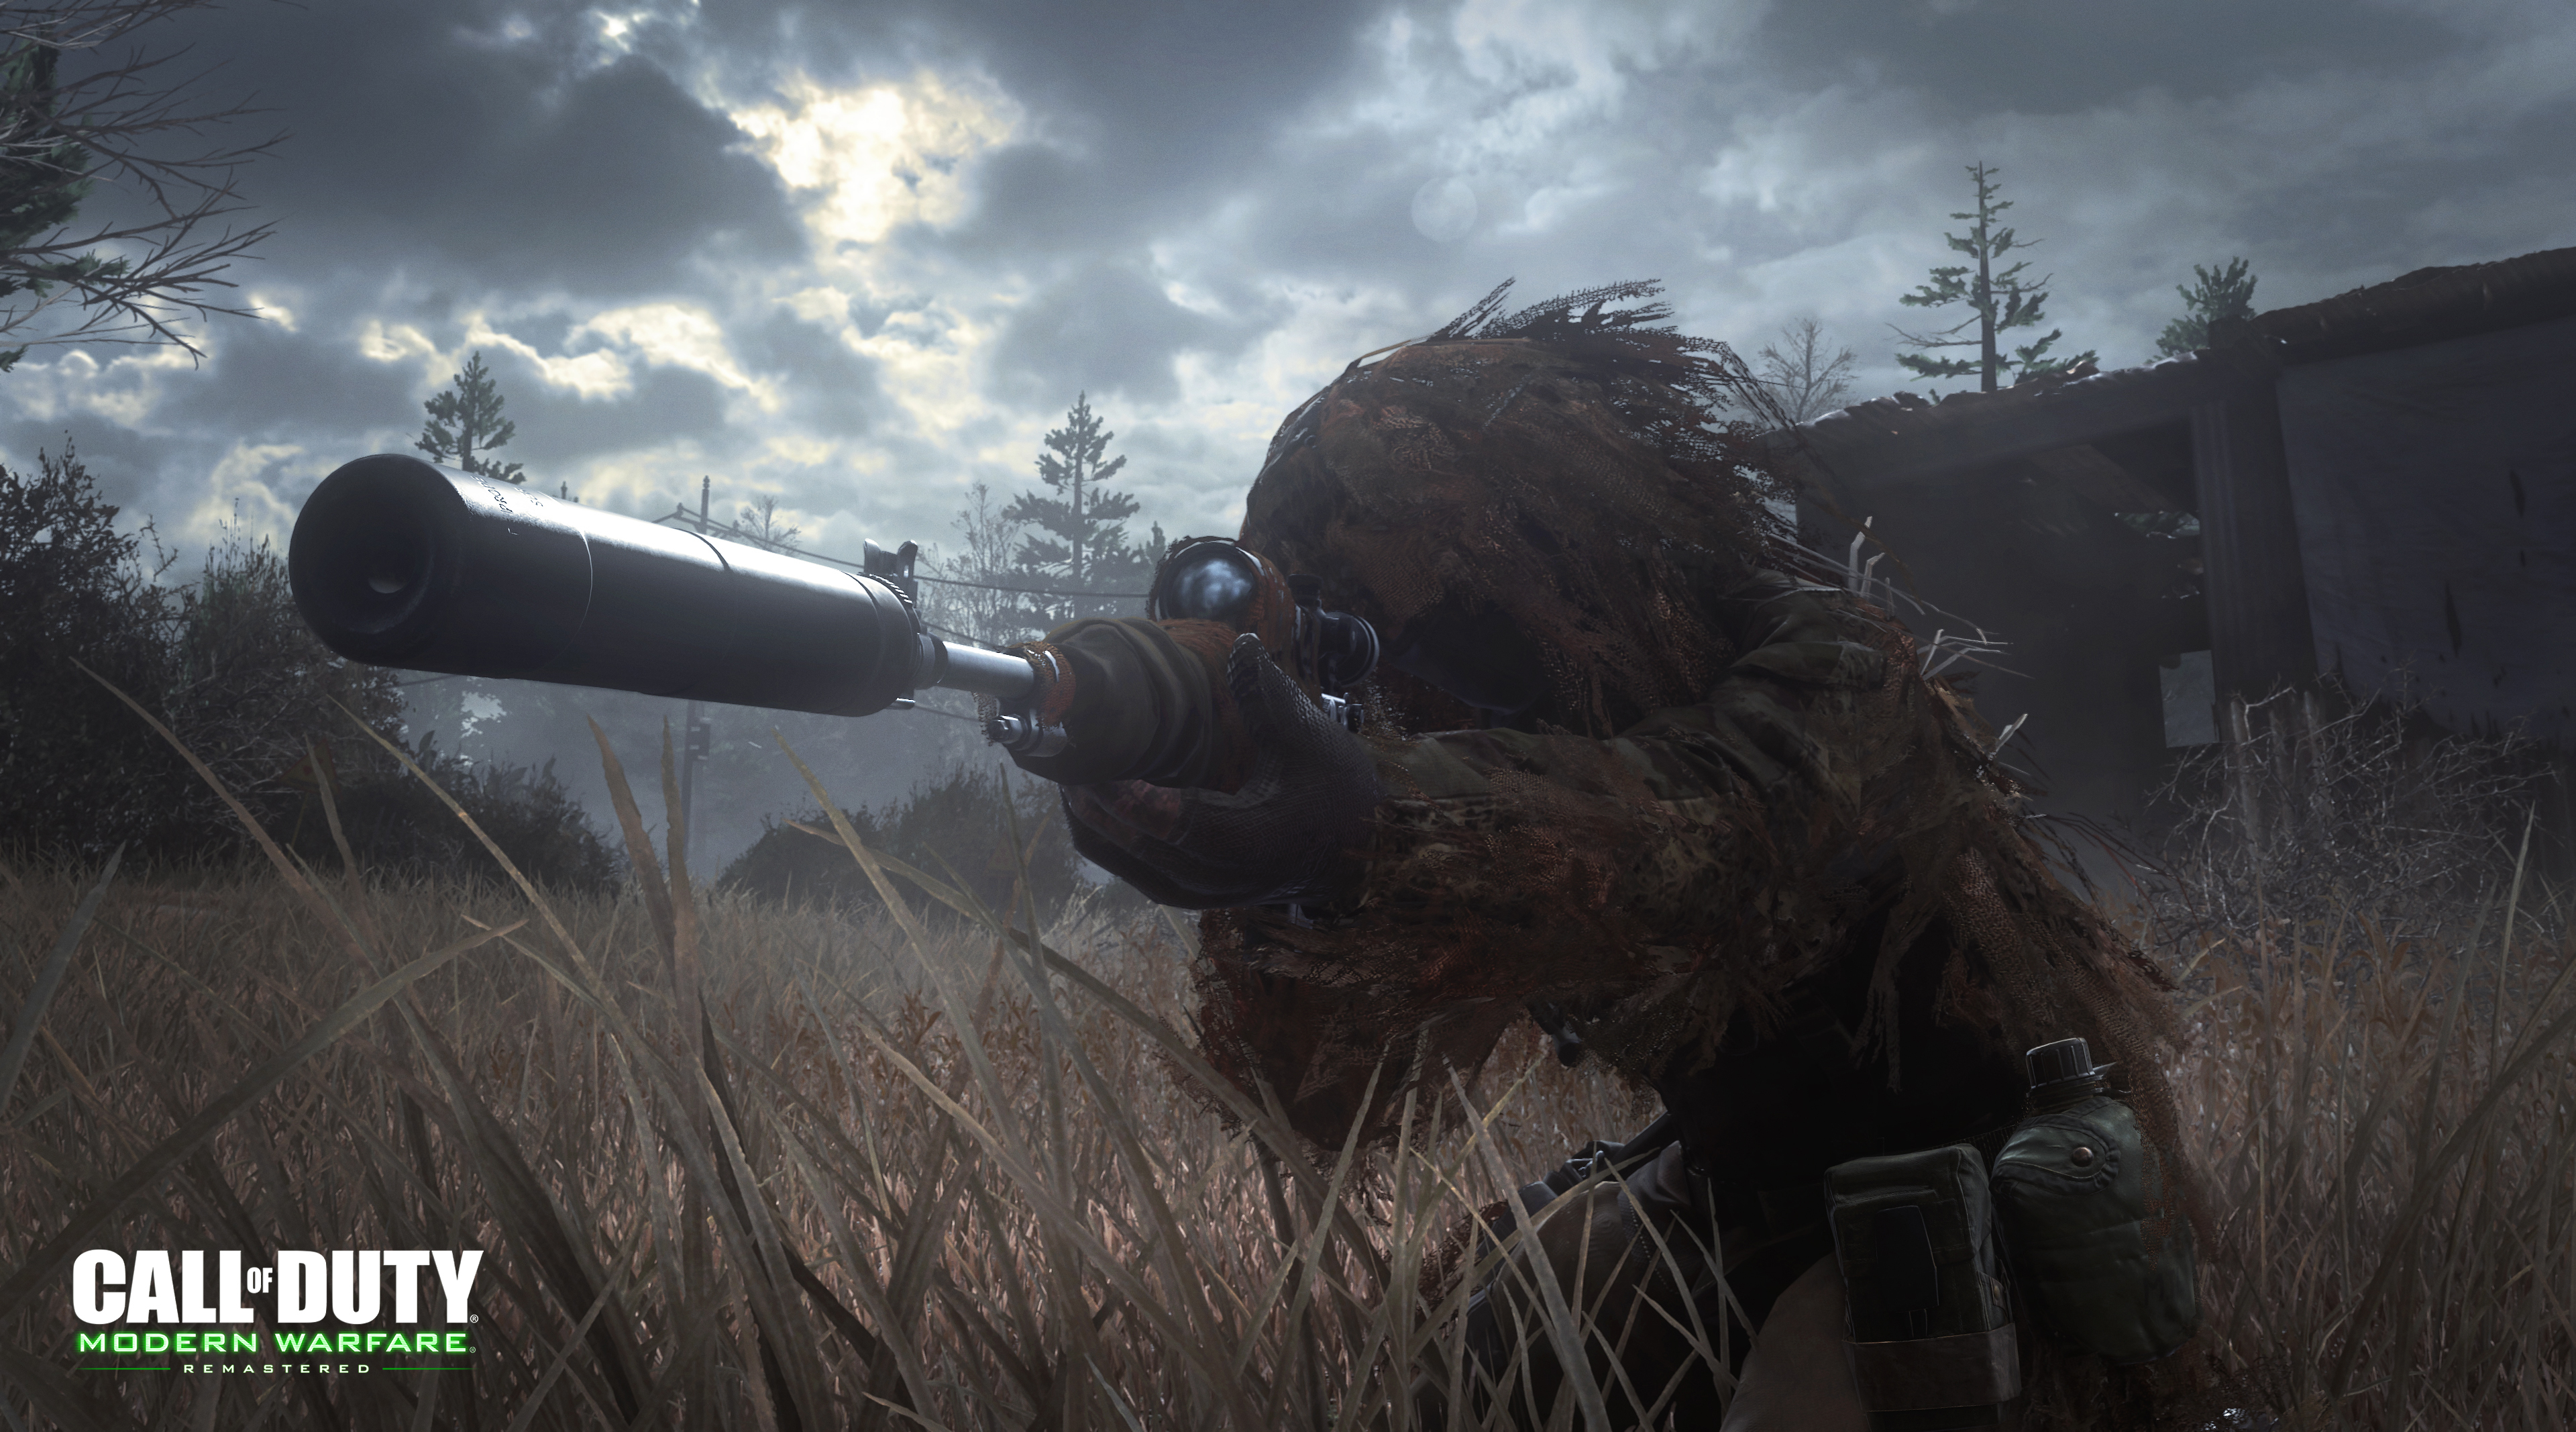 Call Of Duty Modern Warfare Remastered Gets Updated With 6 New